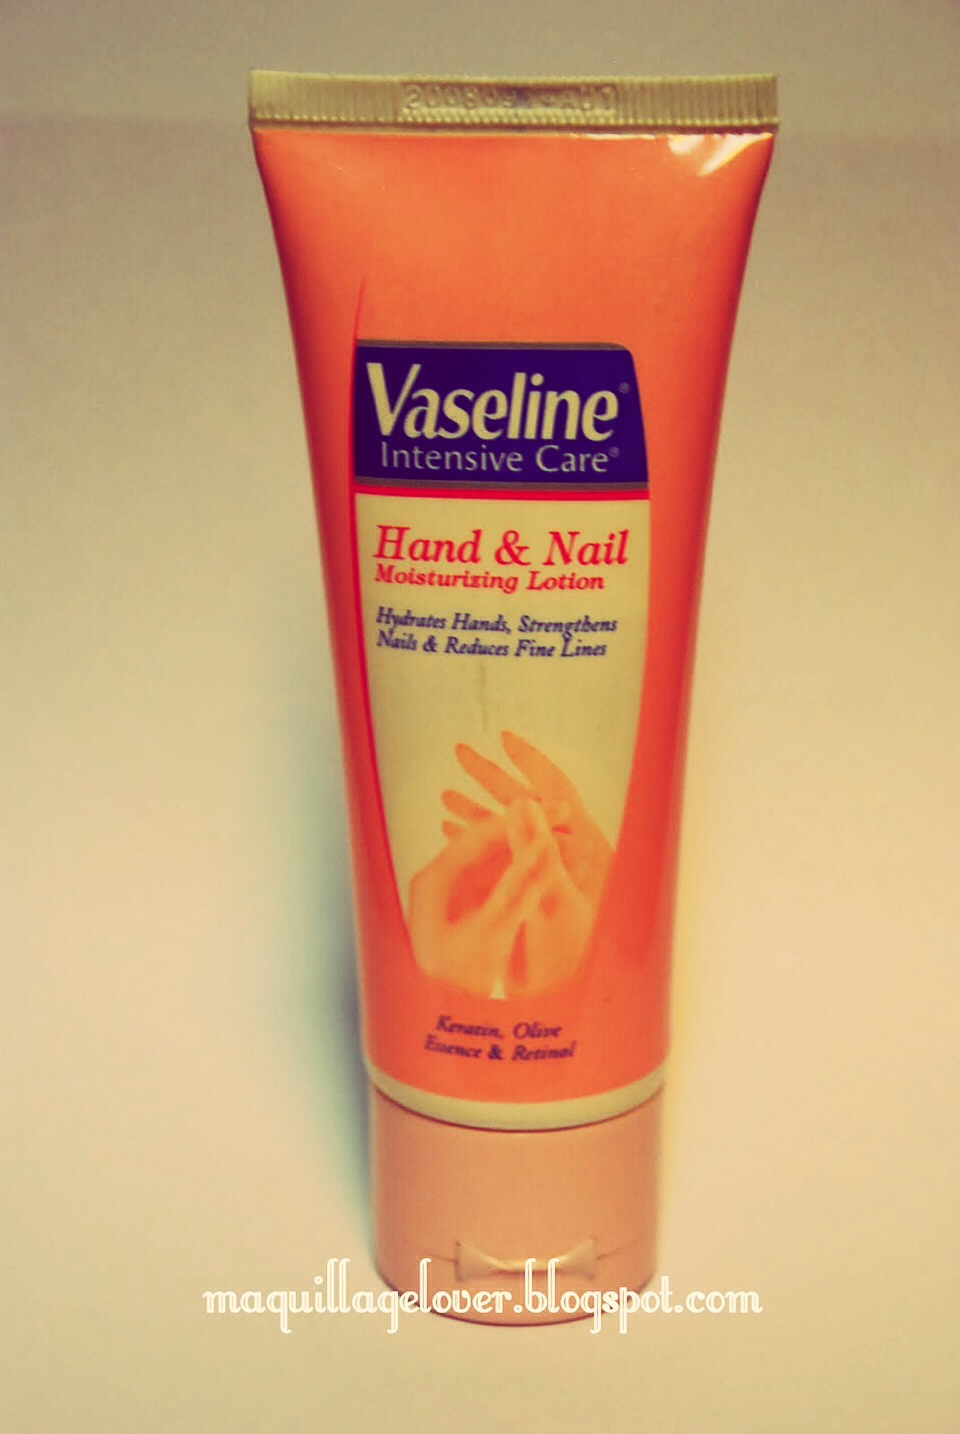 Massage your nails an cuticles with hand cream.. It really helps make your nails grow quicker and stronger!